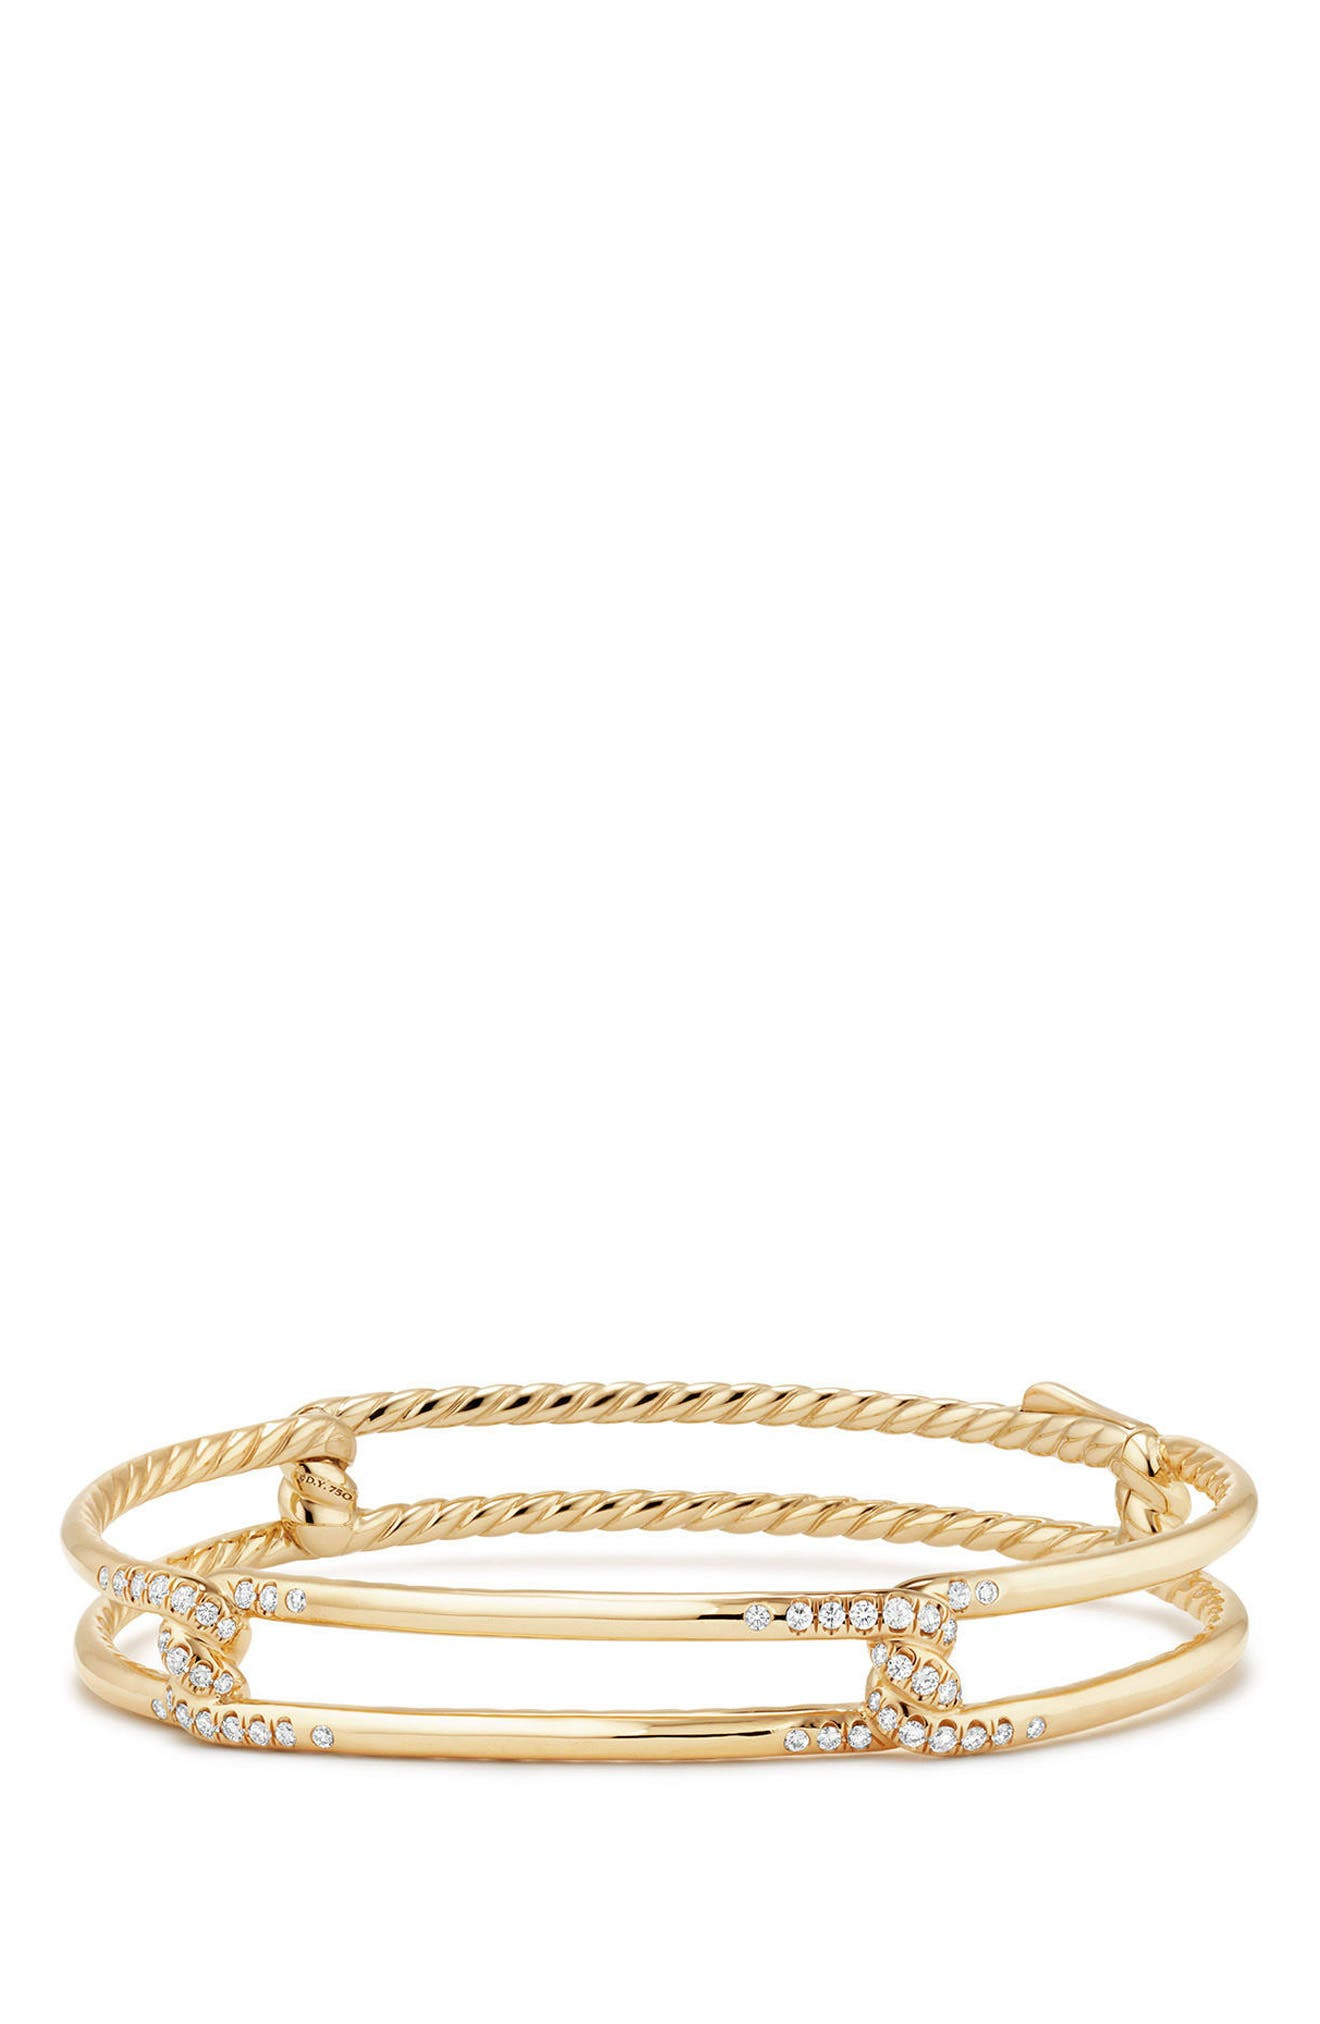 Alternate Image 1 Selected - David Yurman Continuance Bracelet with Diamond in 18K Gold